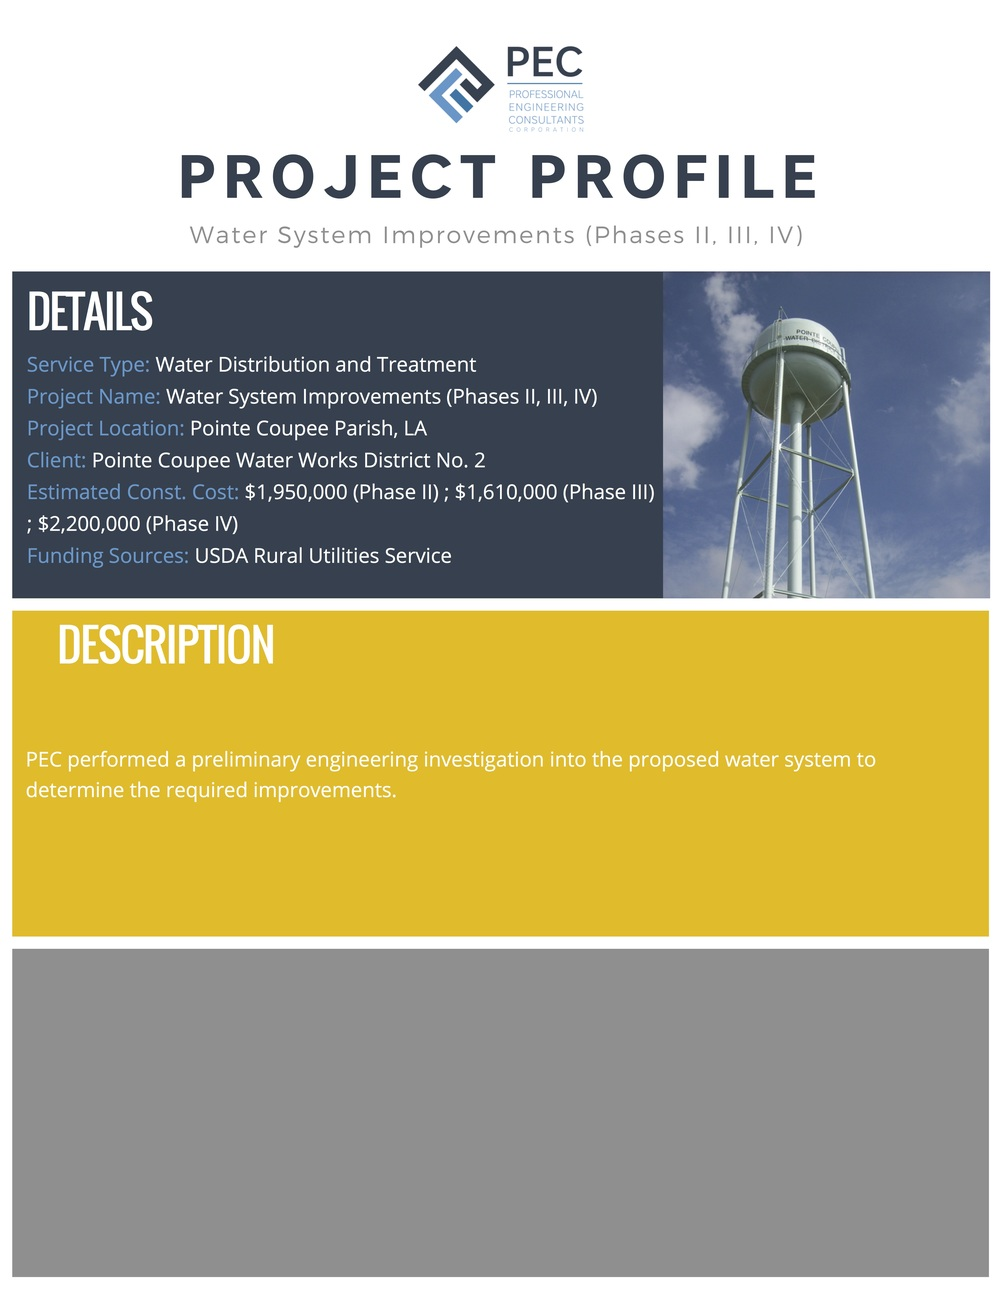 Project Profile_WaterSystemImprovementsFINAL.jpg